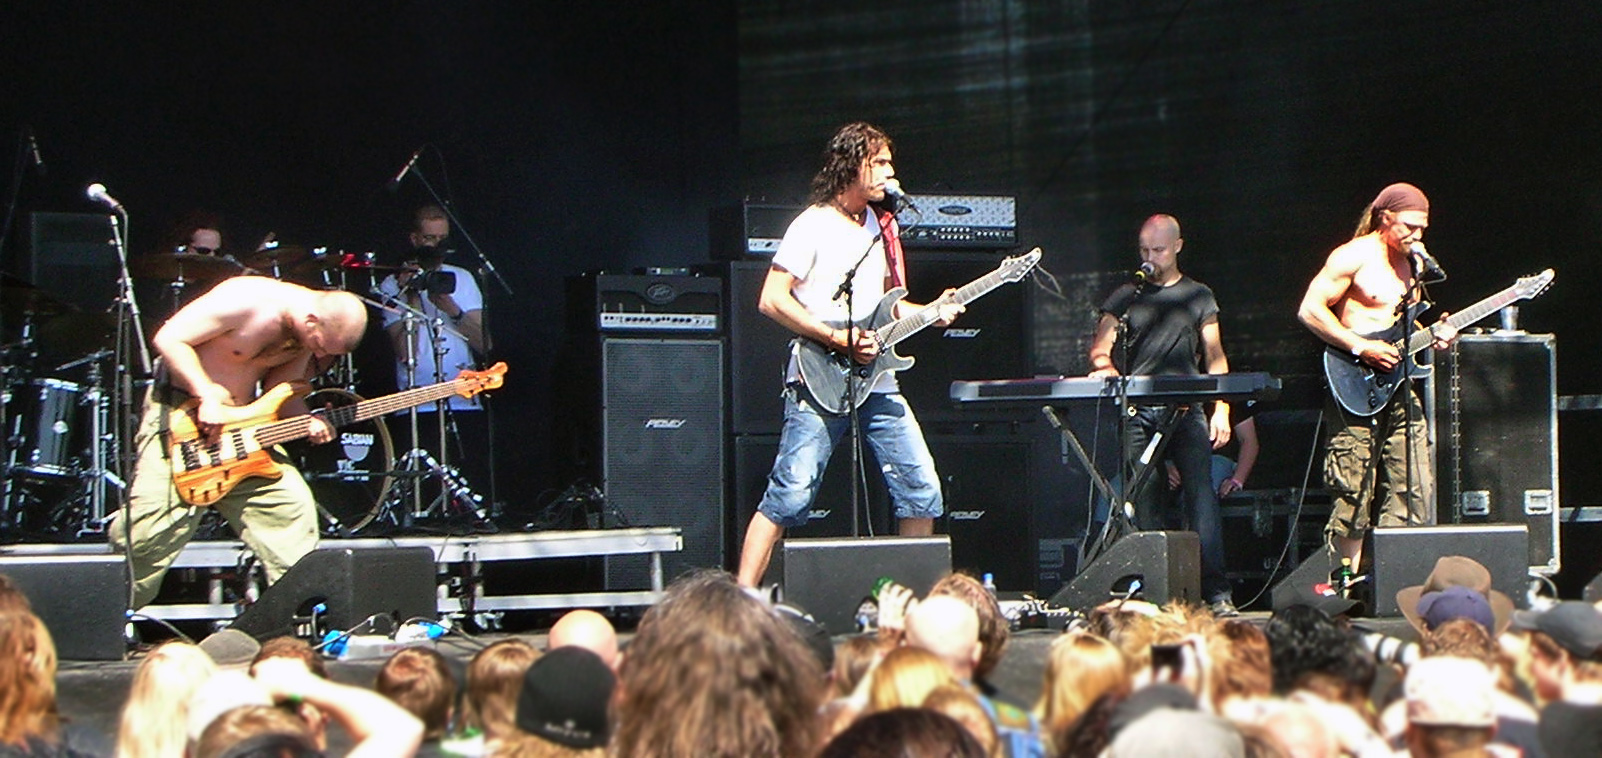 Progressive Metal Pain_of_Salvation_Sweden_Rock_2008